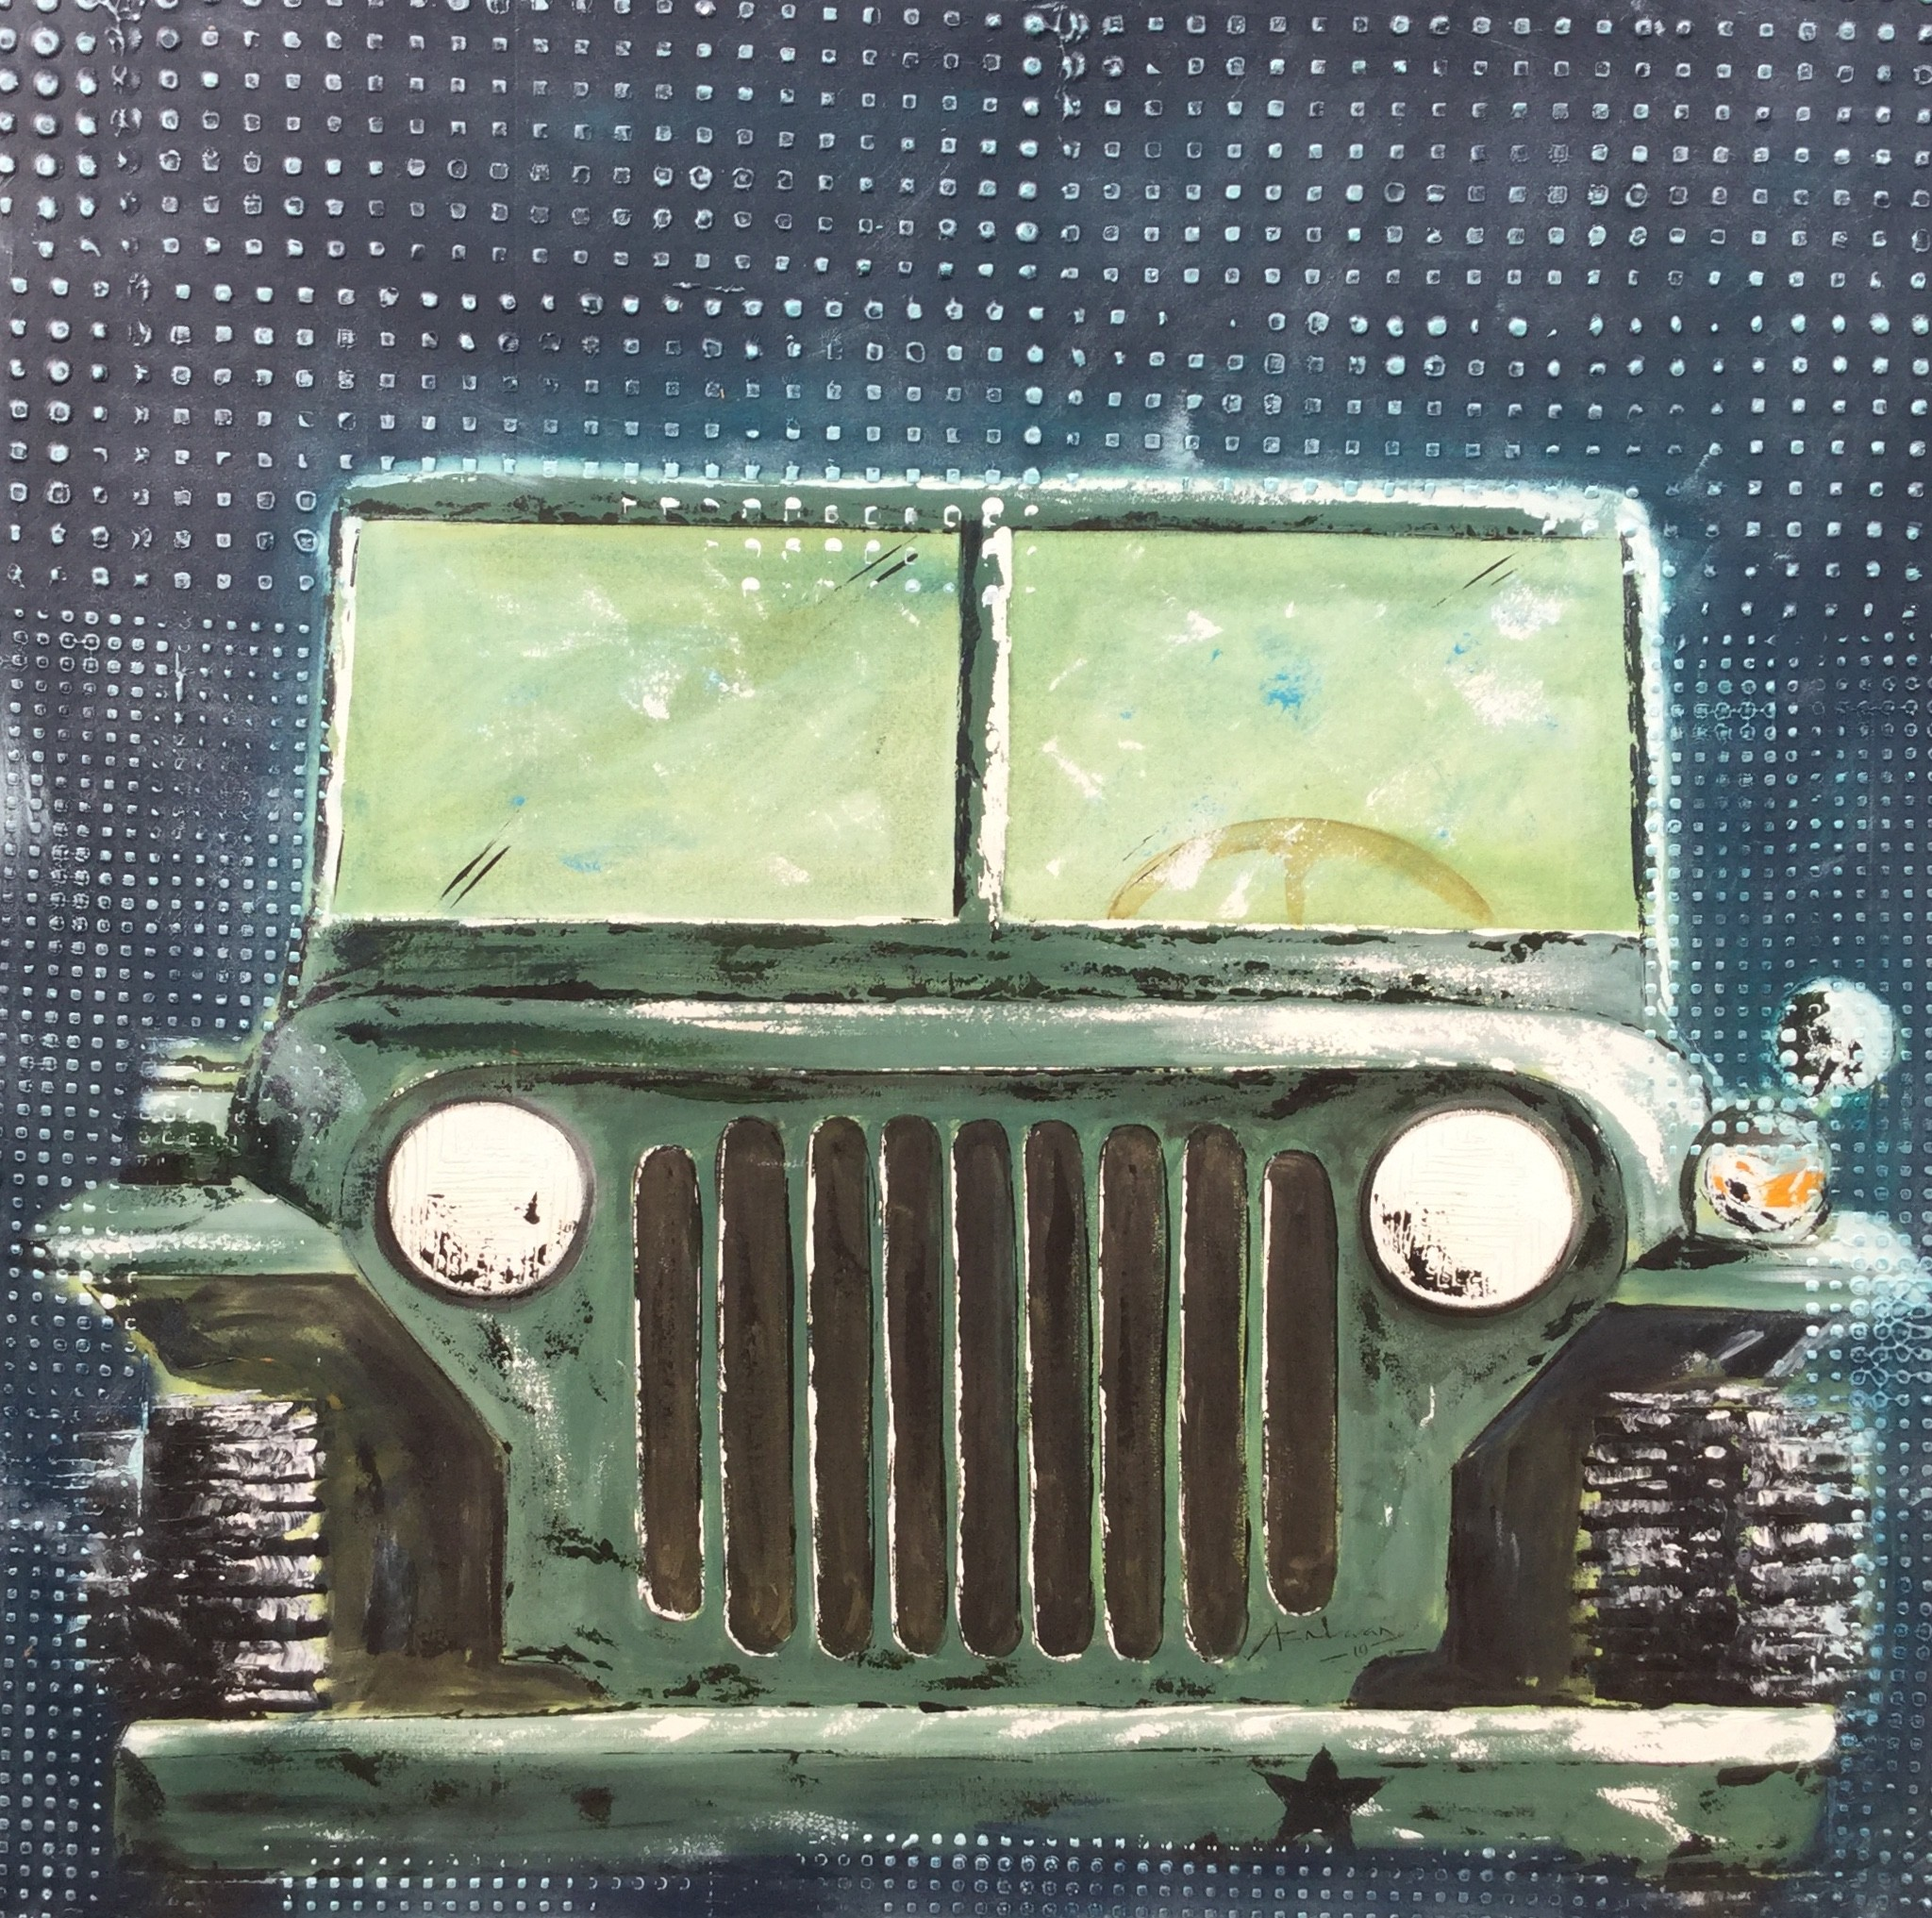 1st war JEEP by AC Nuwan